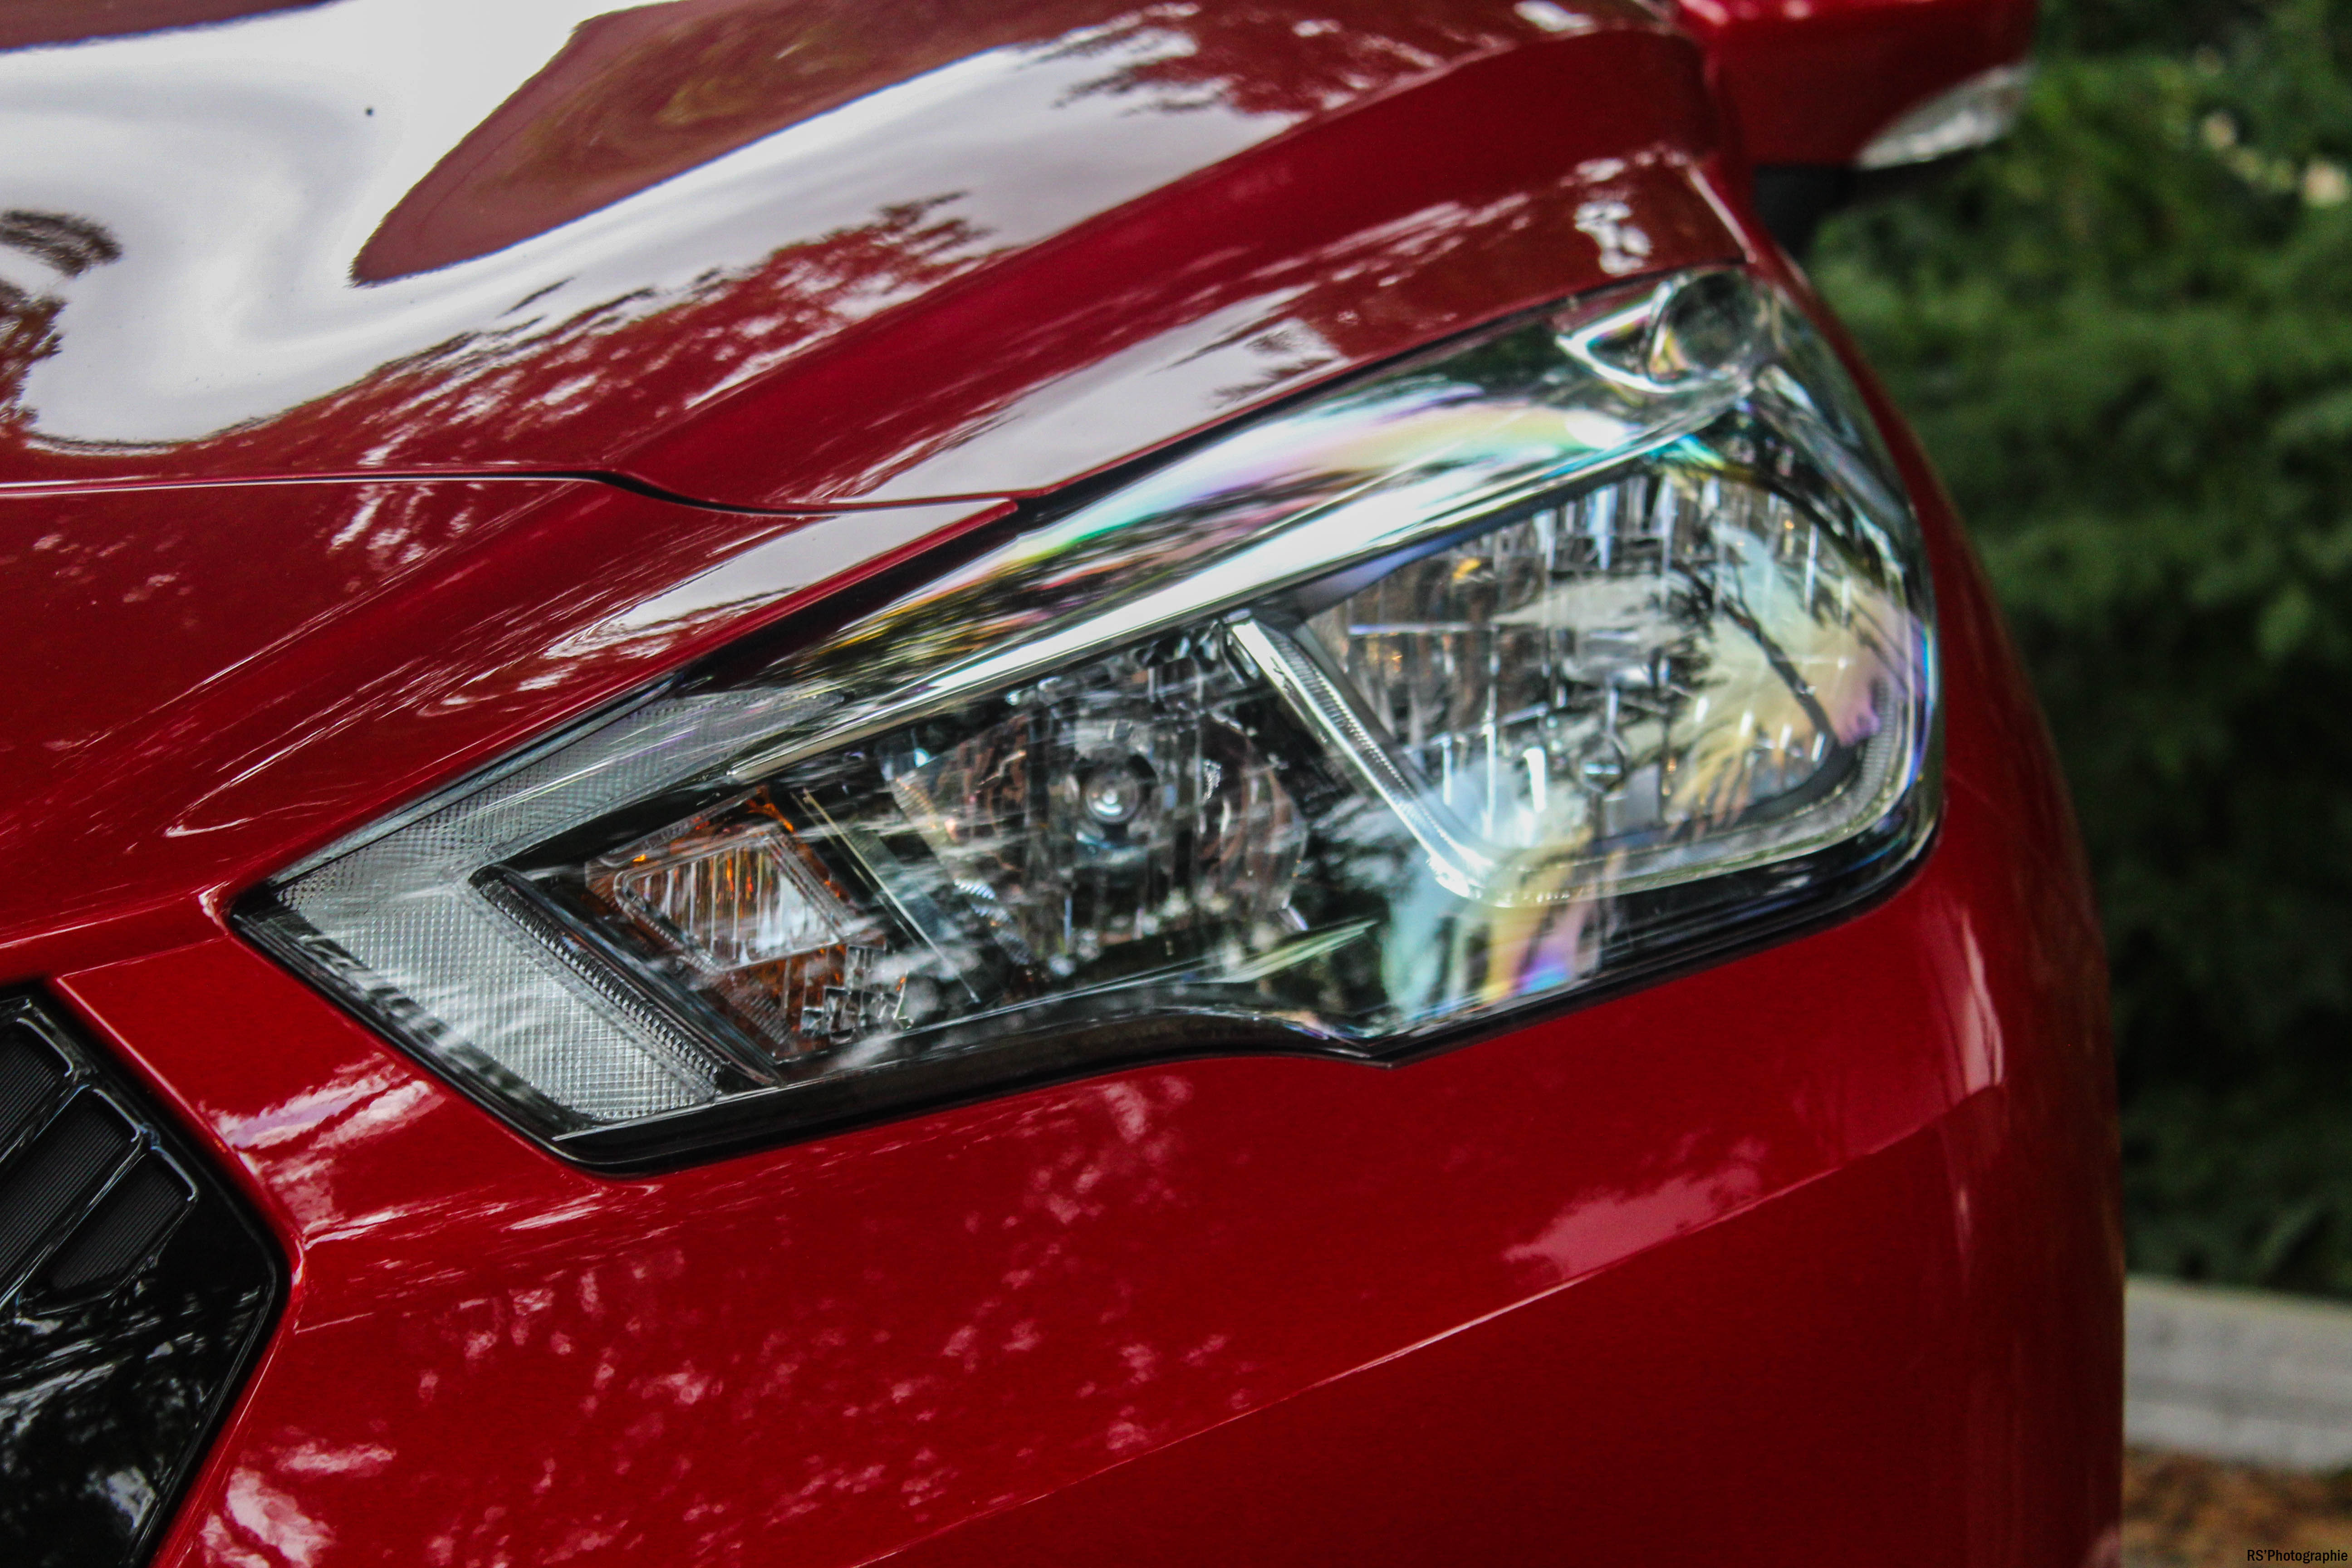 Nissanmicra20-nissan-micra-madeinfrance-phare-headlight-Arnaud Demasier-RSPhotographie